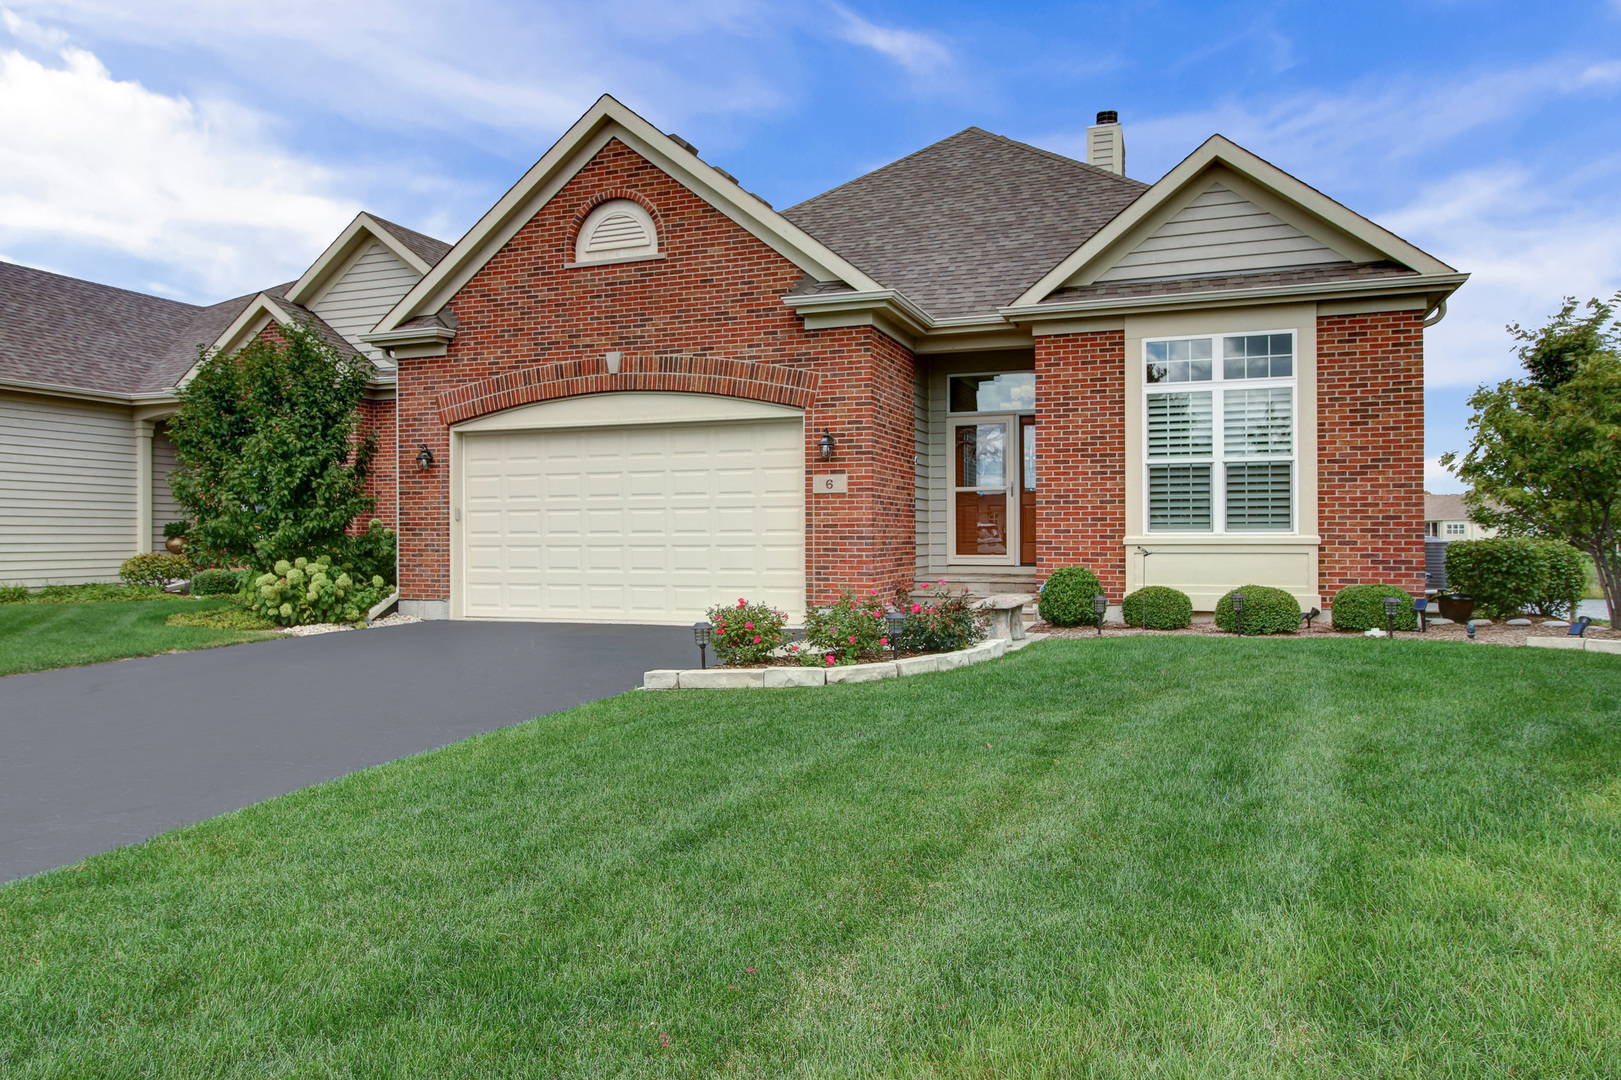 Photo for 6 Austrian Court, Lake In The Hills, IL 60156 (MLS # 10719731)